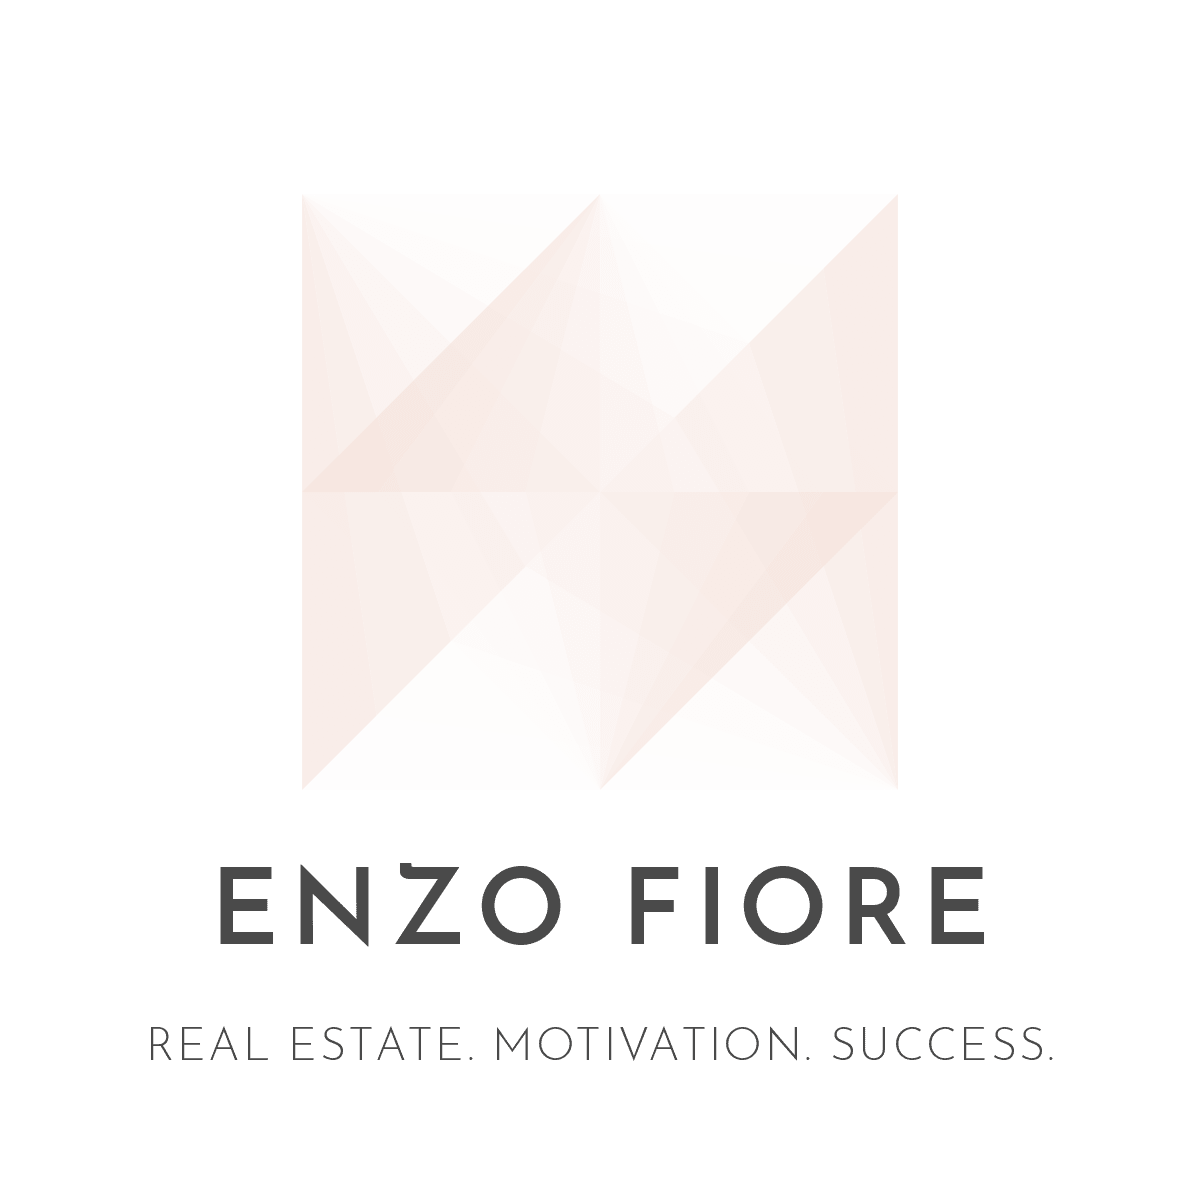 Enzo Fiore- Luxury Real Estate Agent And Coach